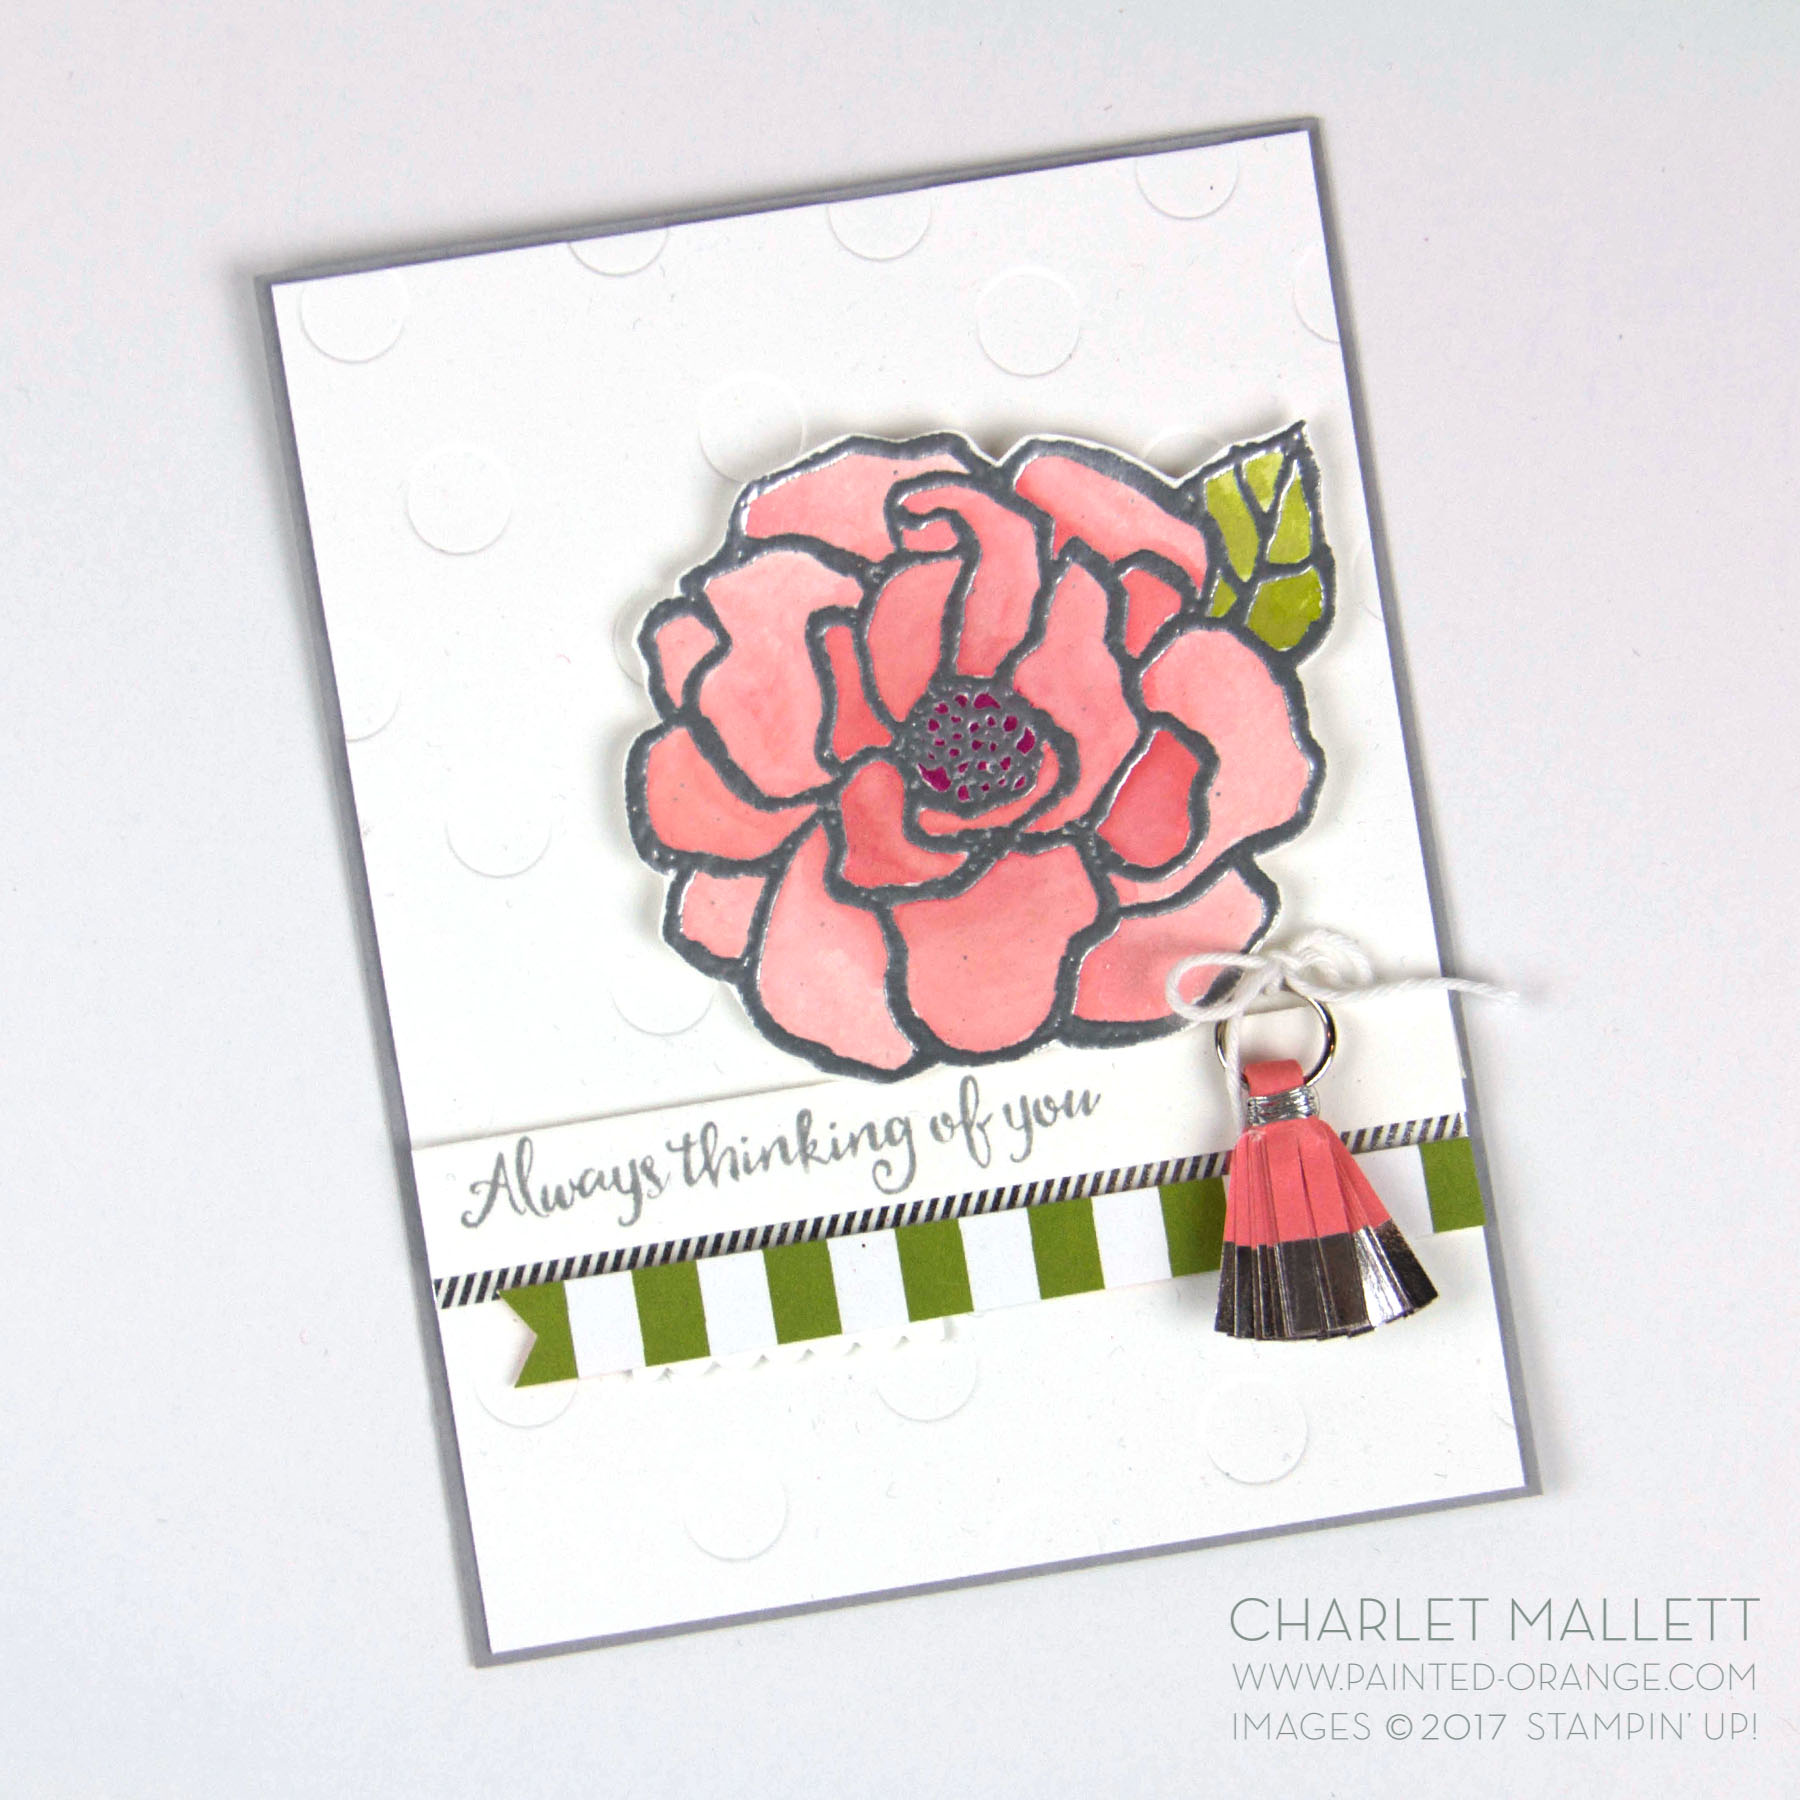 Beautiful Day Rose card - Charlet Mallett - Stampin' Up! Occasions 2018